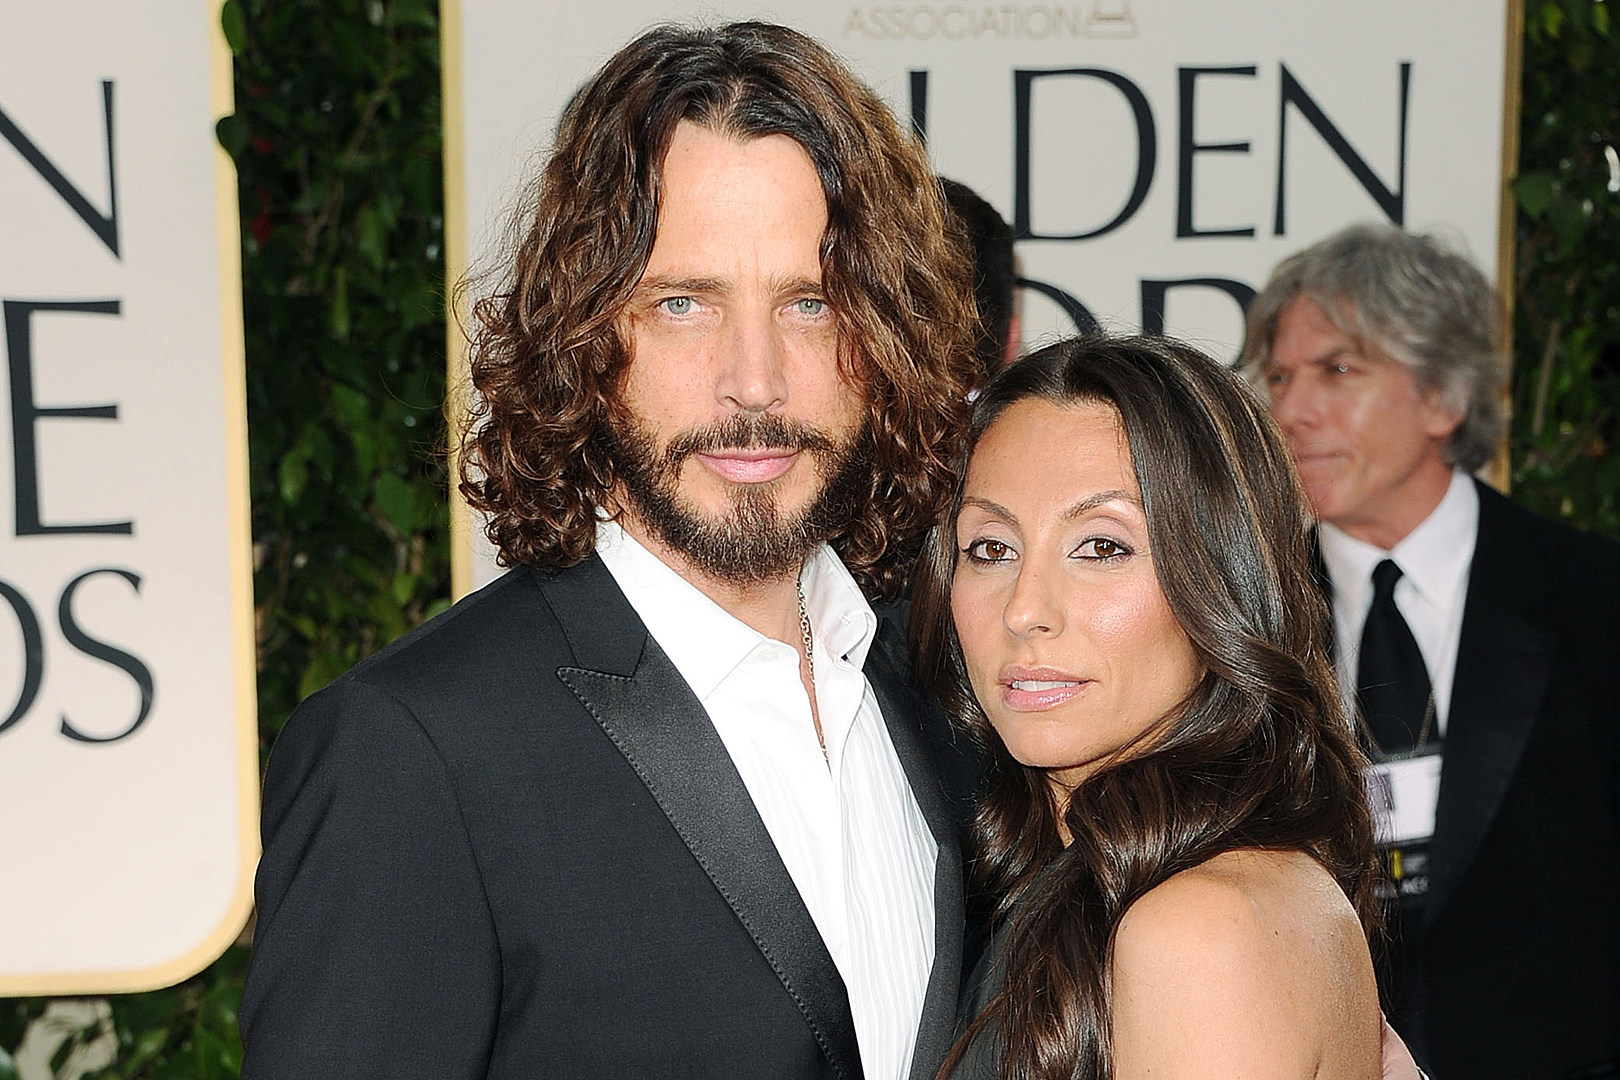 Vicky Cornell Launches 'Addiction Resource Center for Chris'